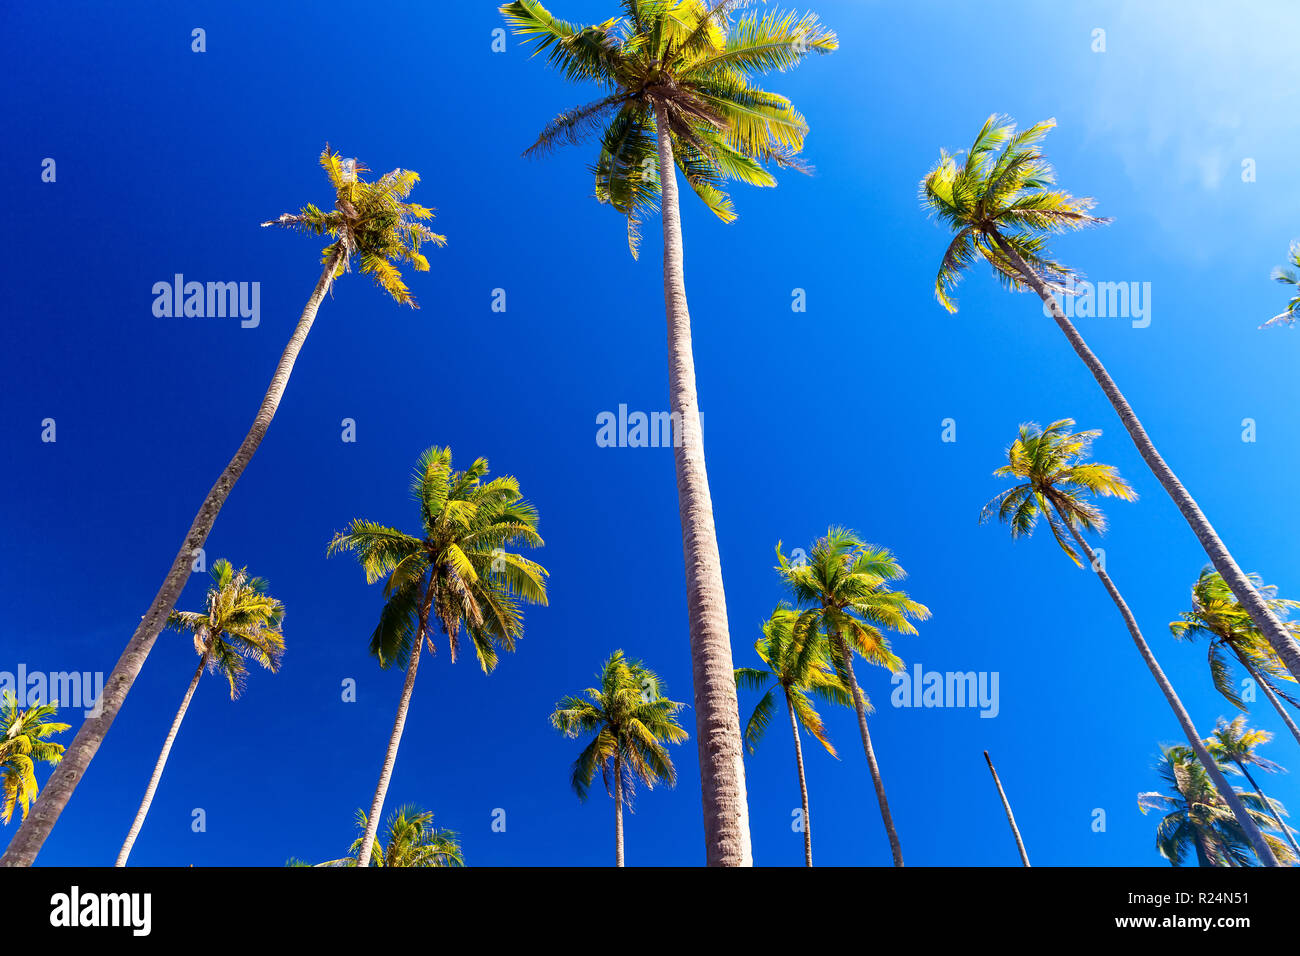 Coconut palm trees on tropical beach on background blue sky - Stock Image